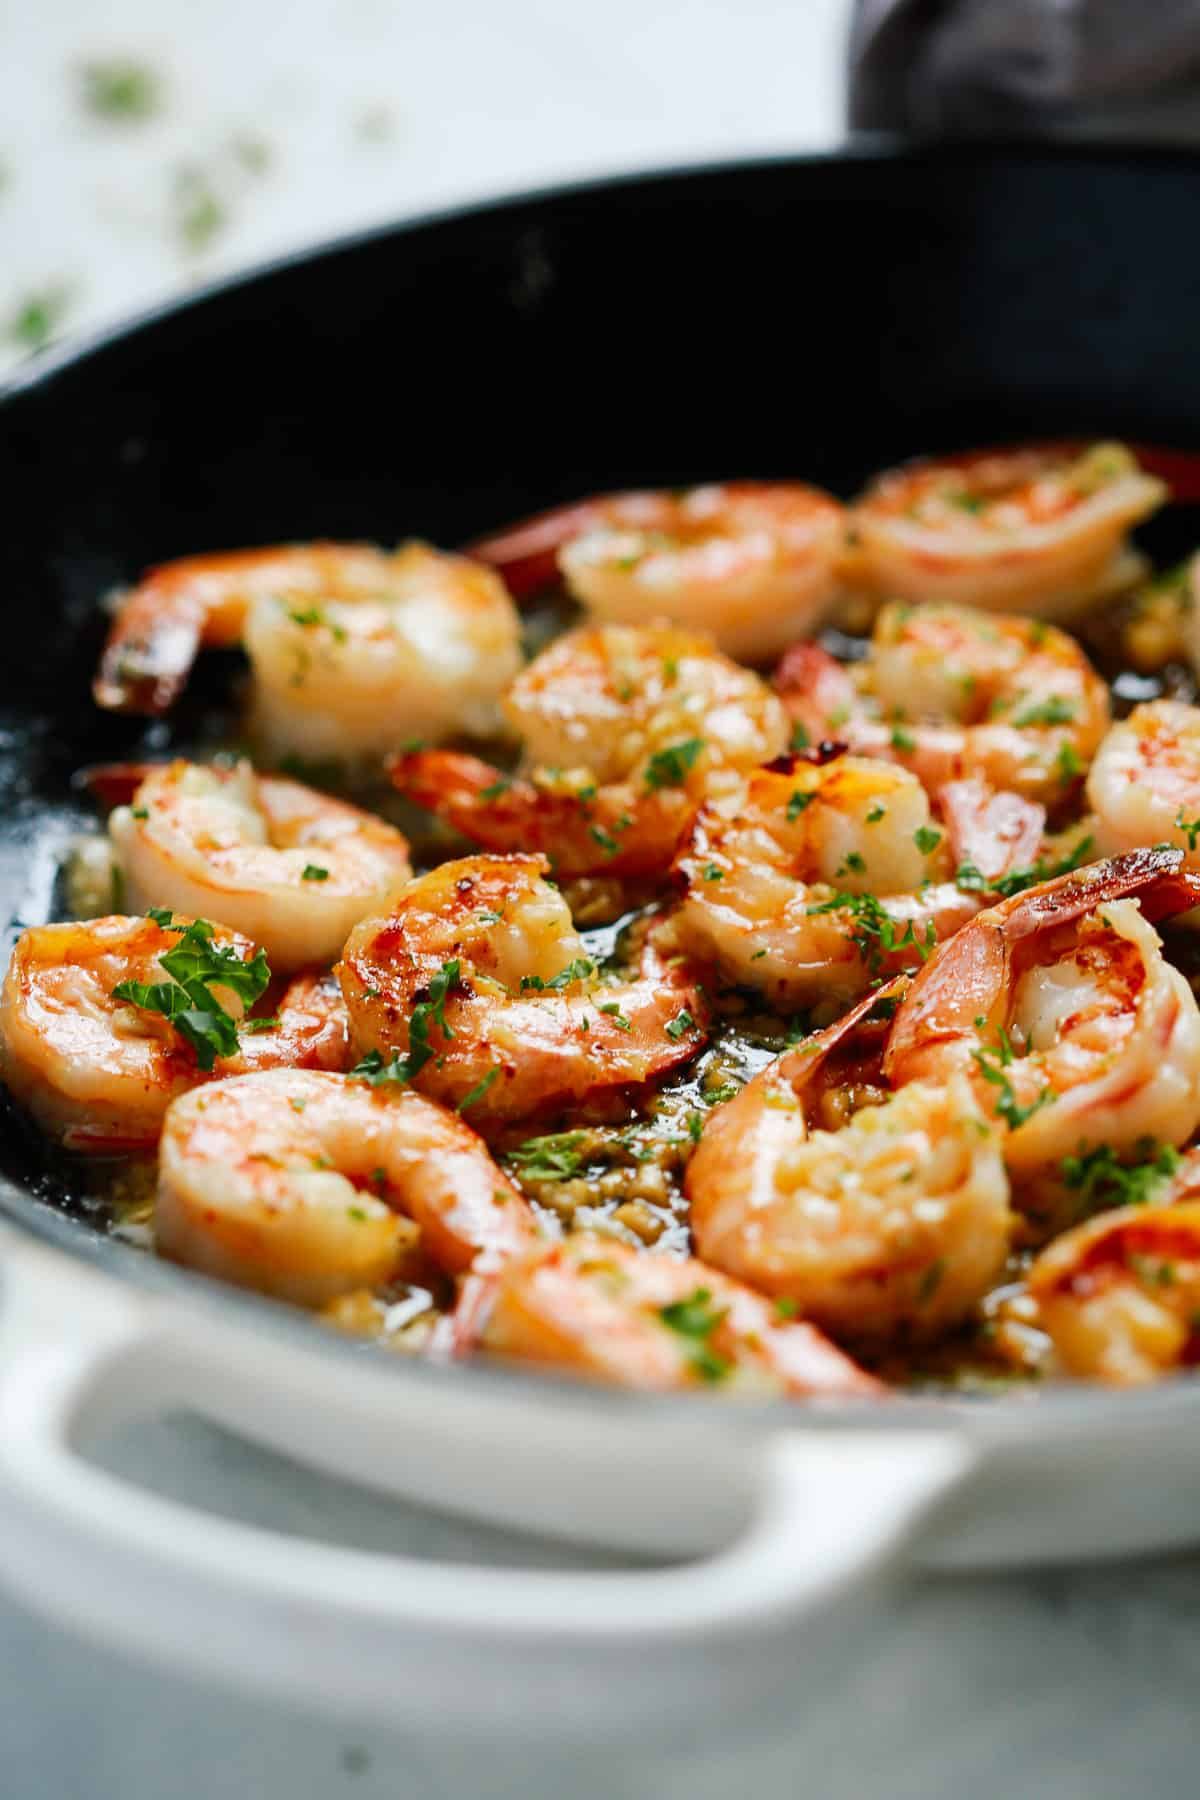 shrimp recipe being cooked in a skillet with butter and garlic seasoning